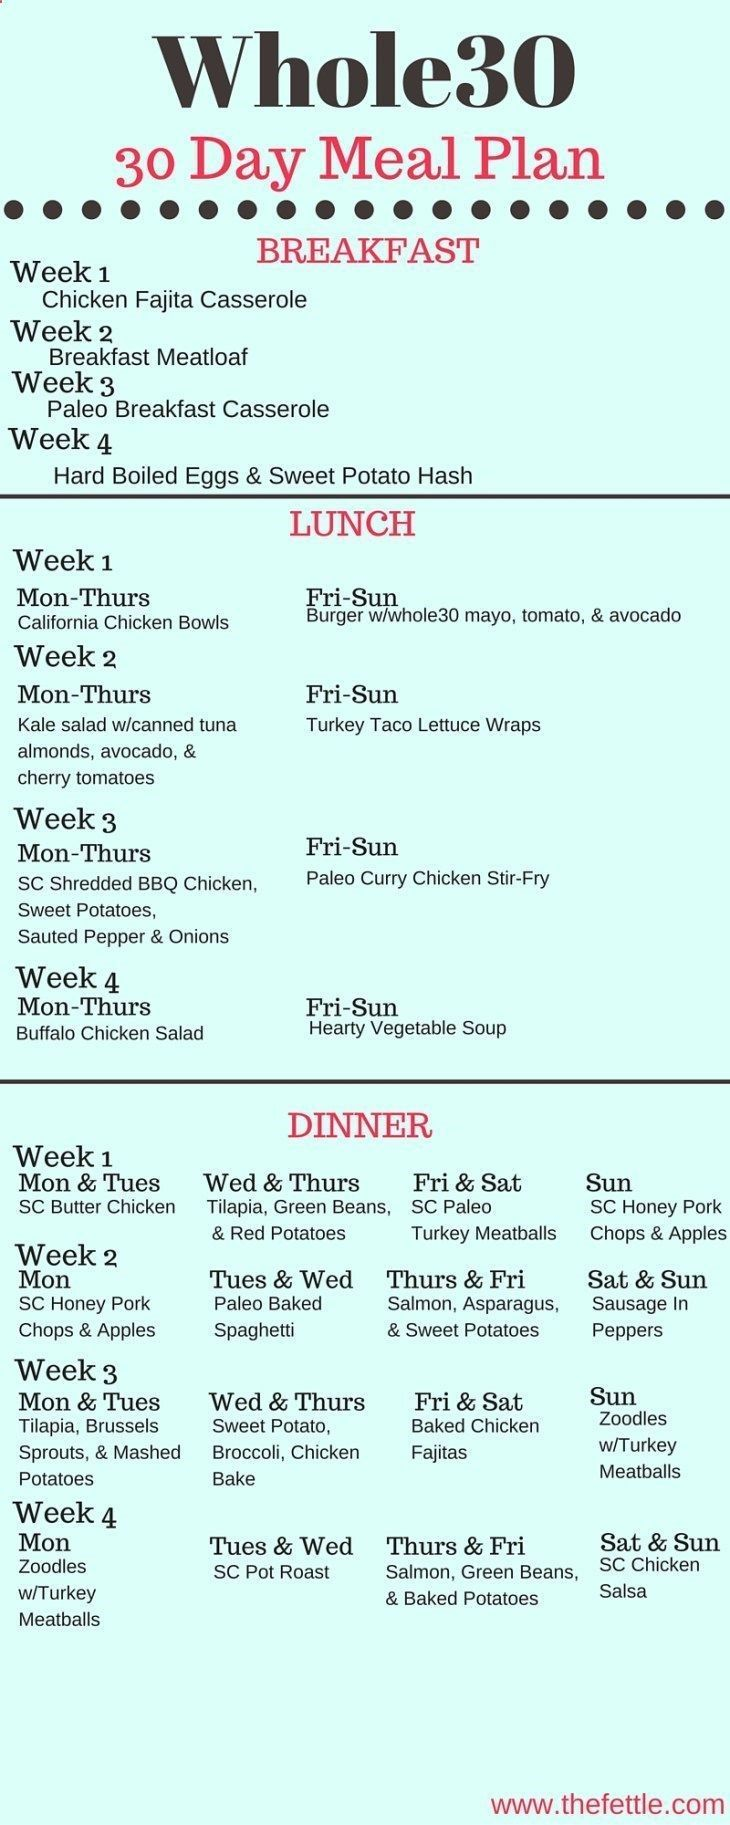 How much weight can you lose by starving yourself for 1 week